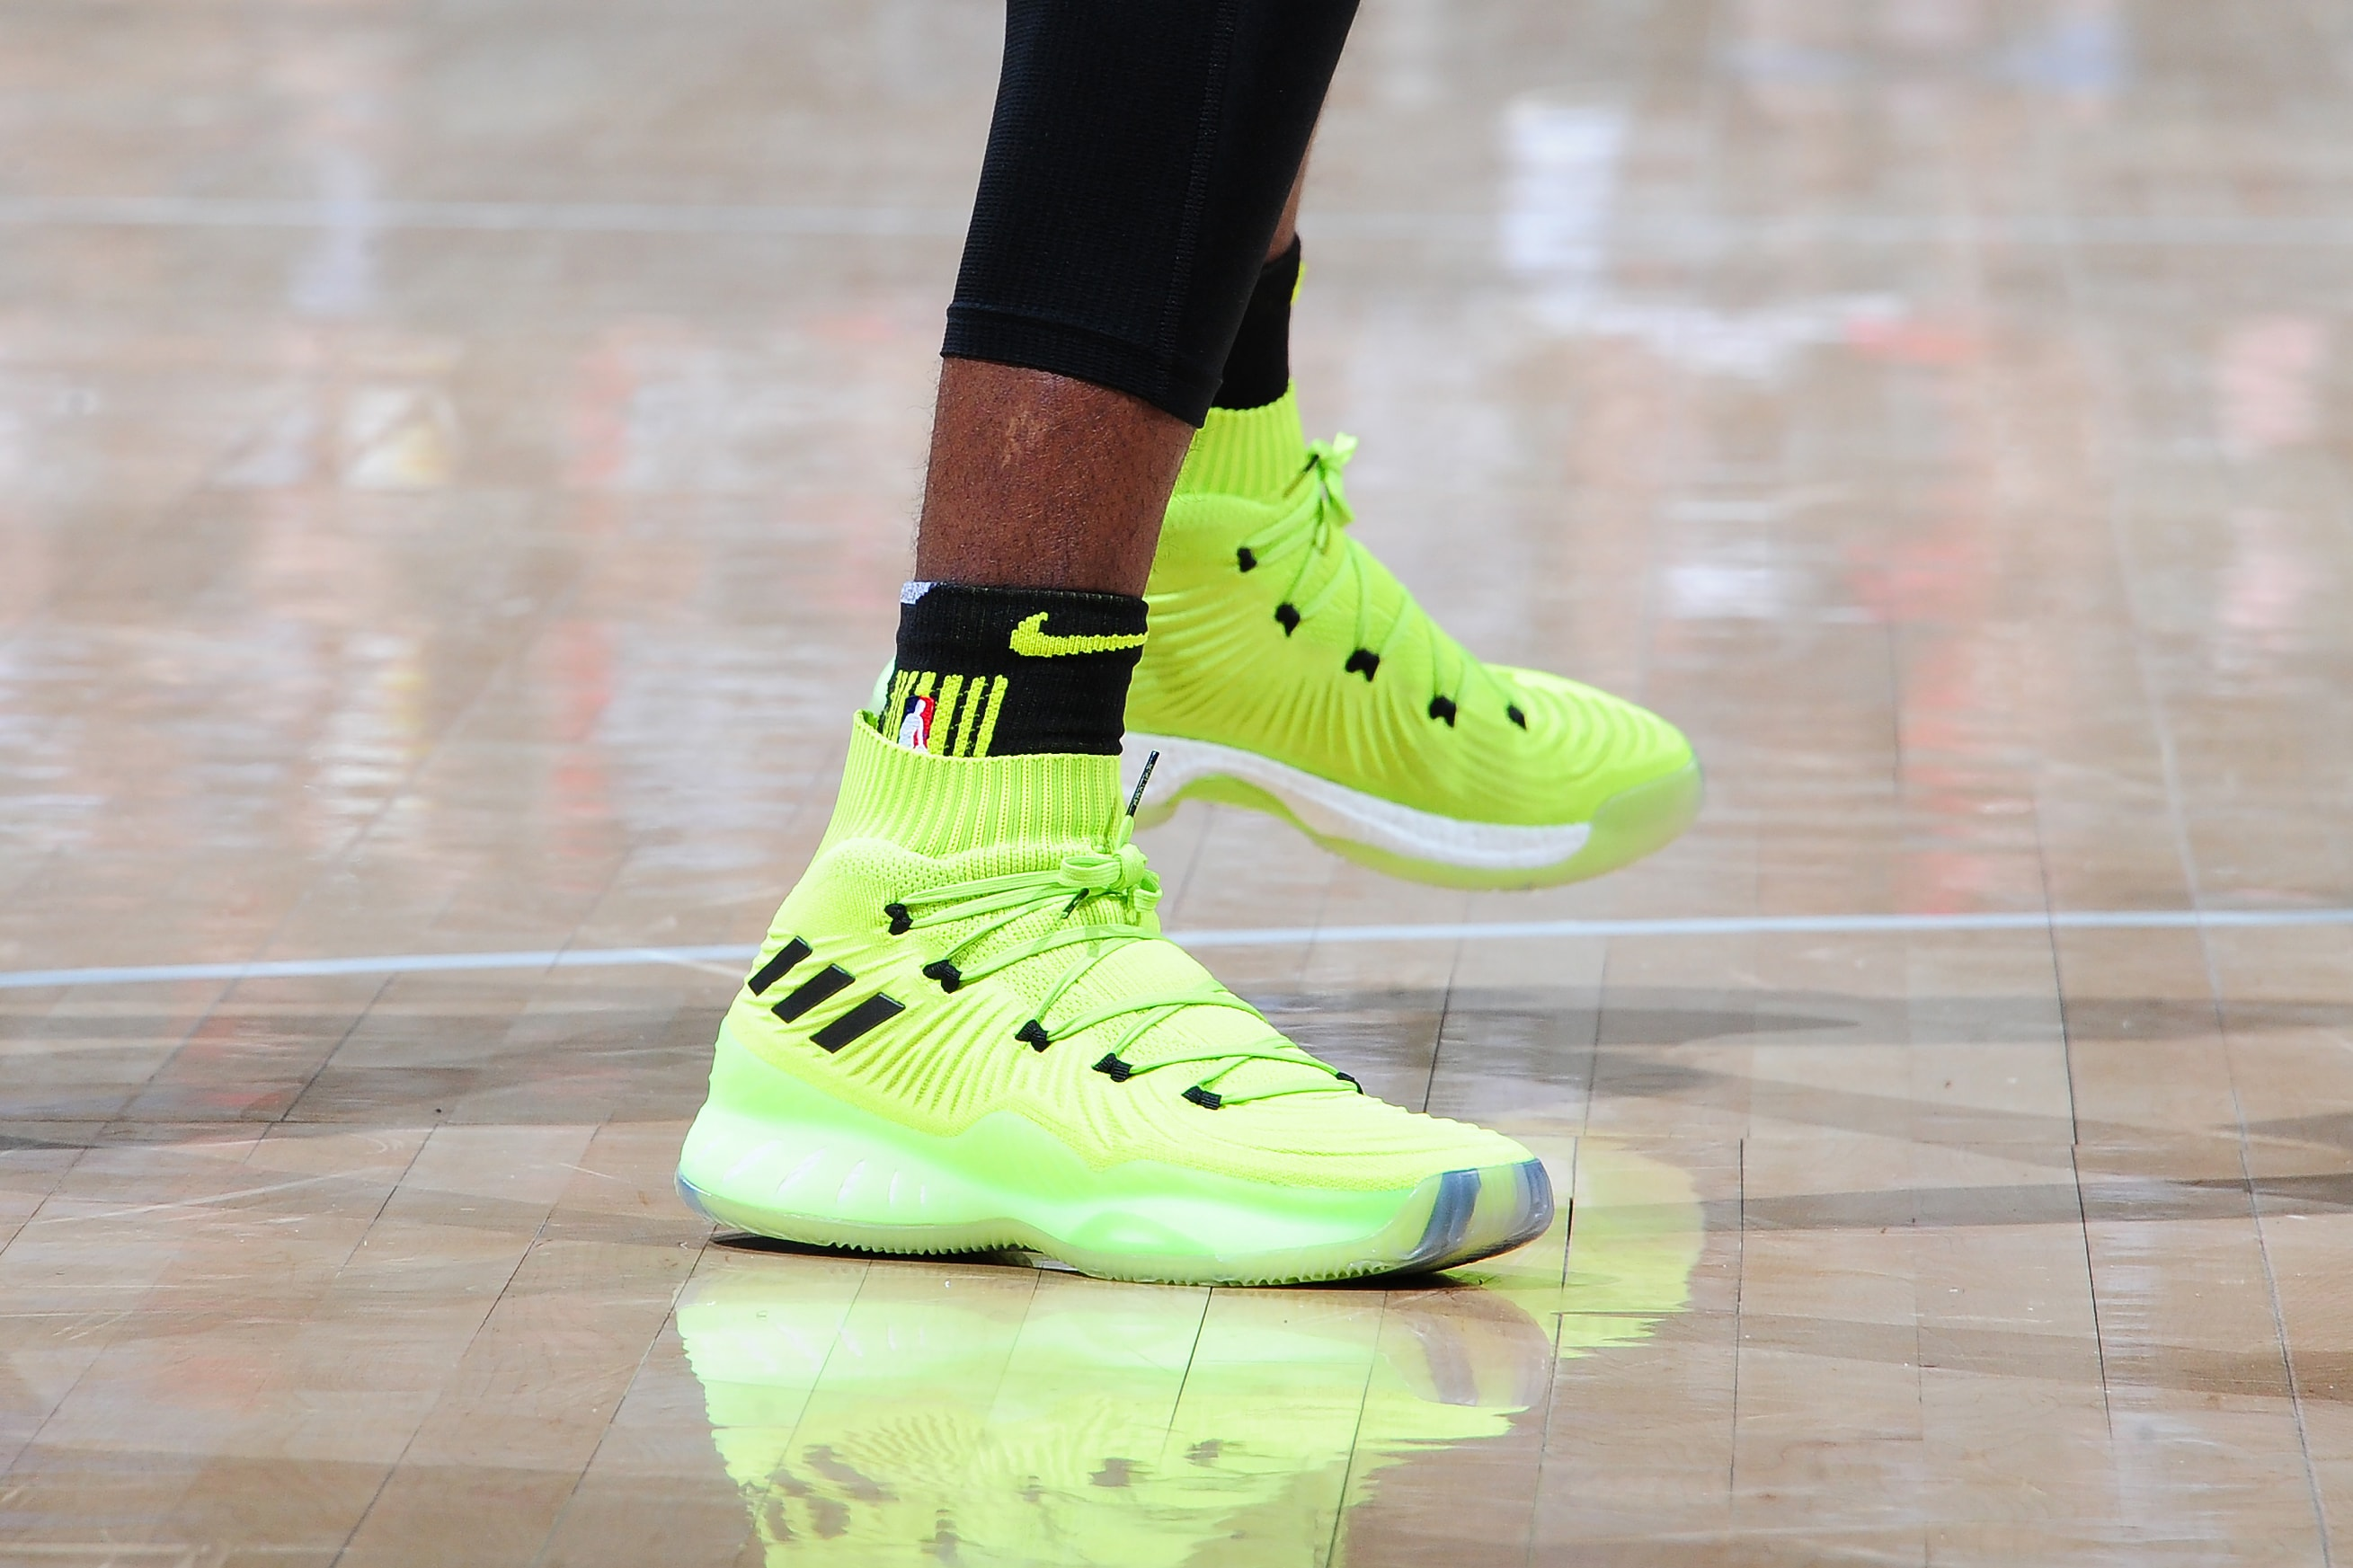 0cc29a68d7add Looking fresh in our top picks of Hawks  nbakicks.(Scott Cunningham NBAE